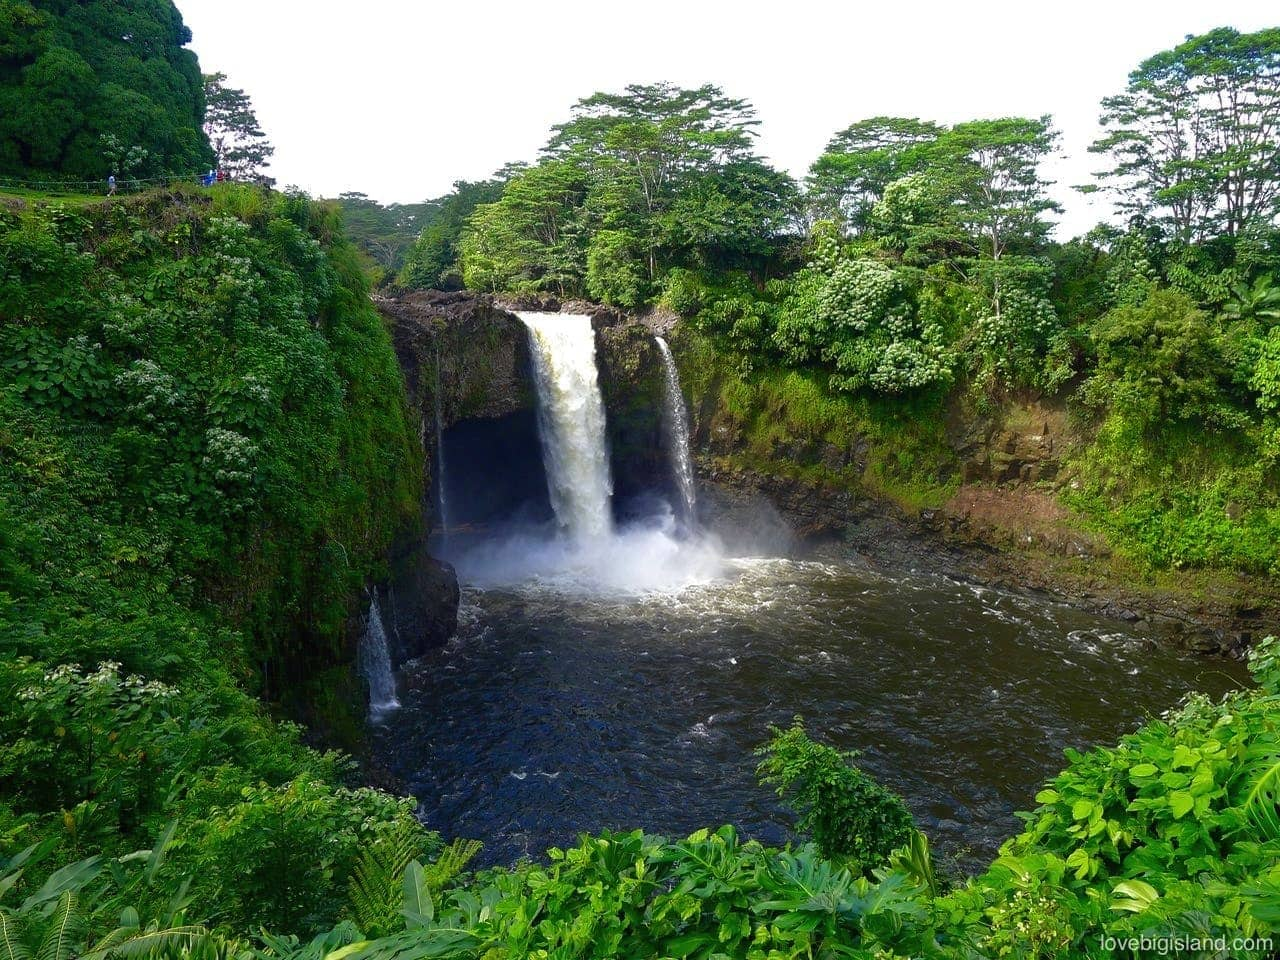 The Rainbow Falls (Waiānuenue) in Hilo